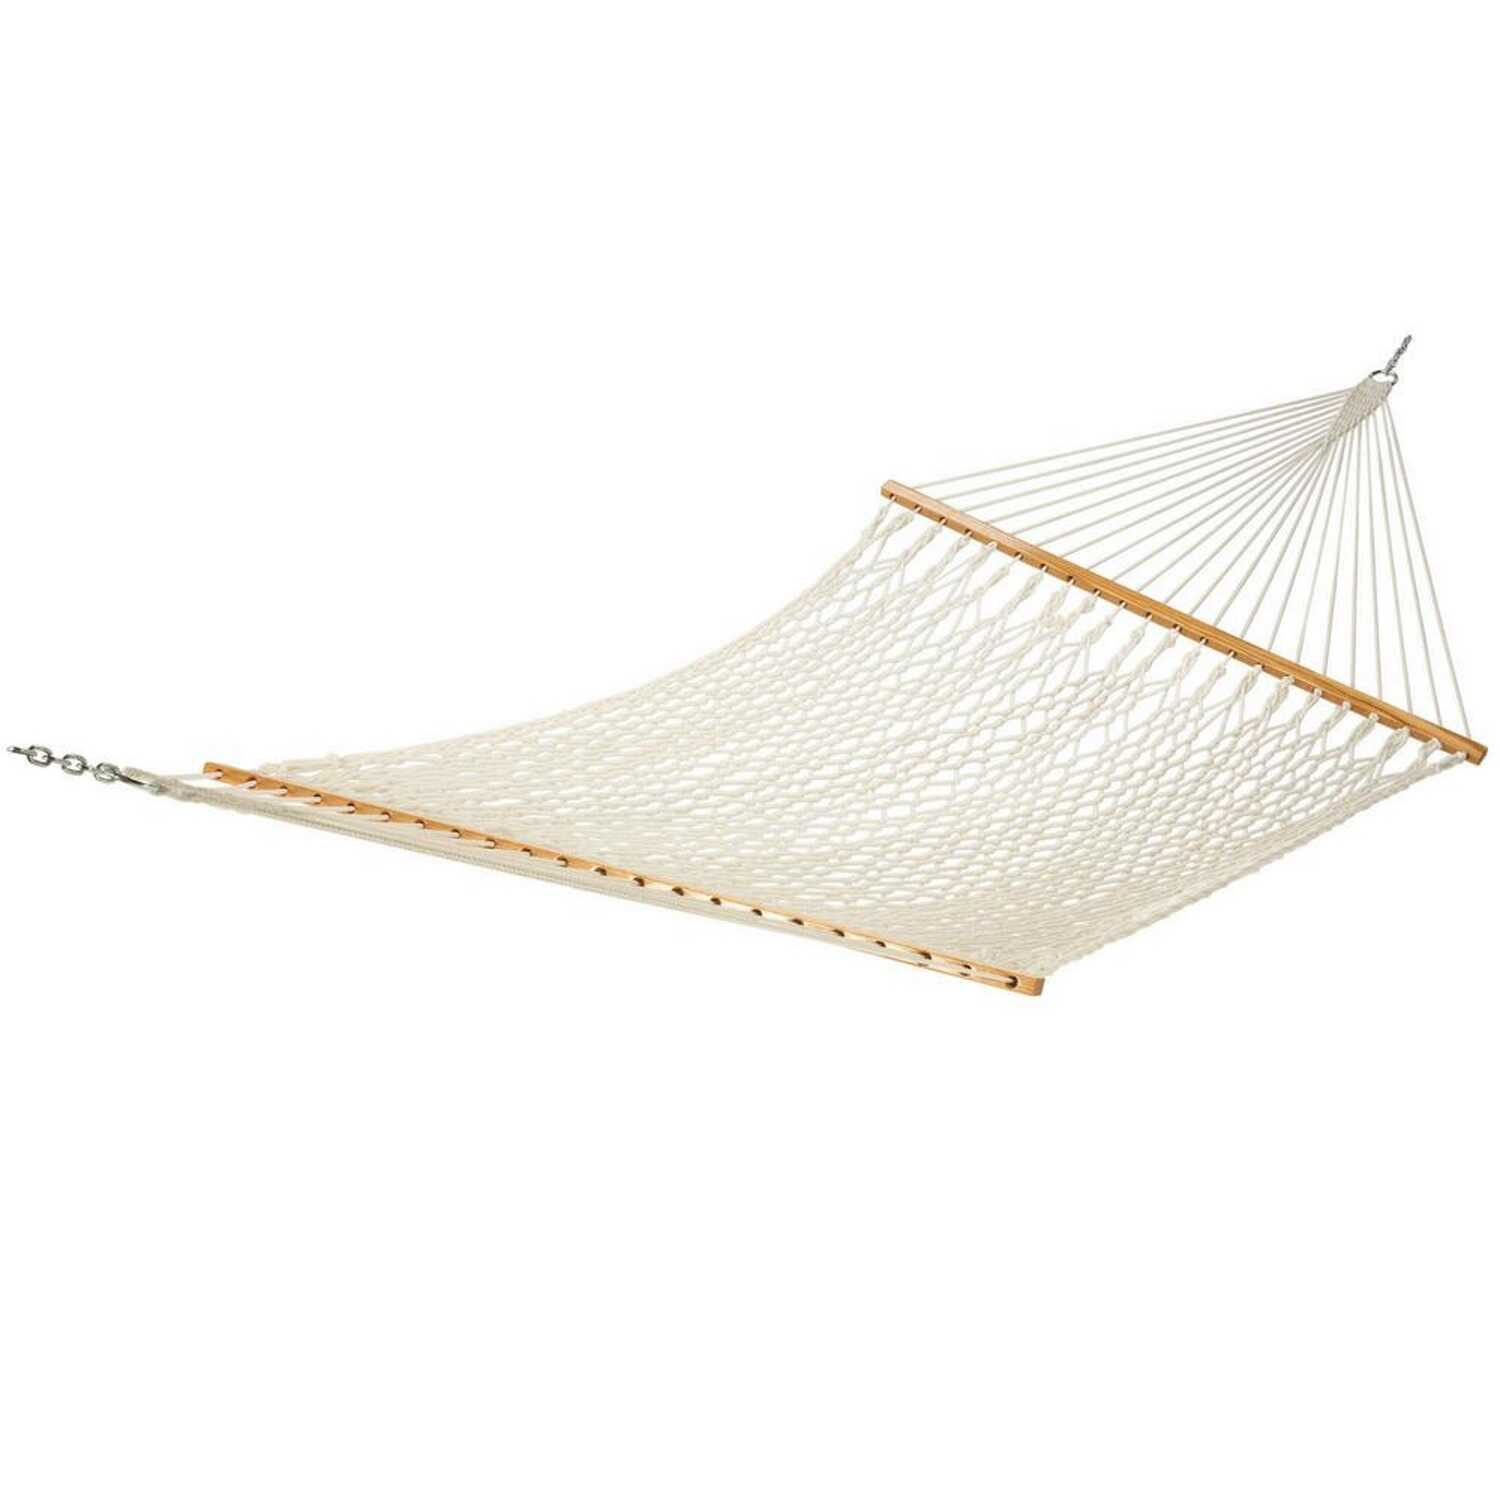 Castaway  60 in. W x 82 in. L 2 person  White  Hammock